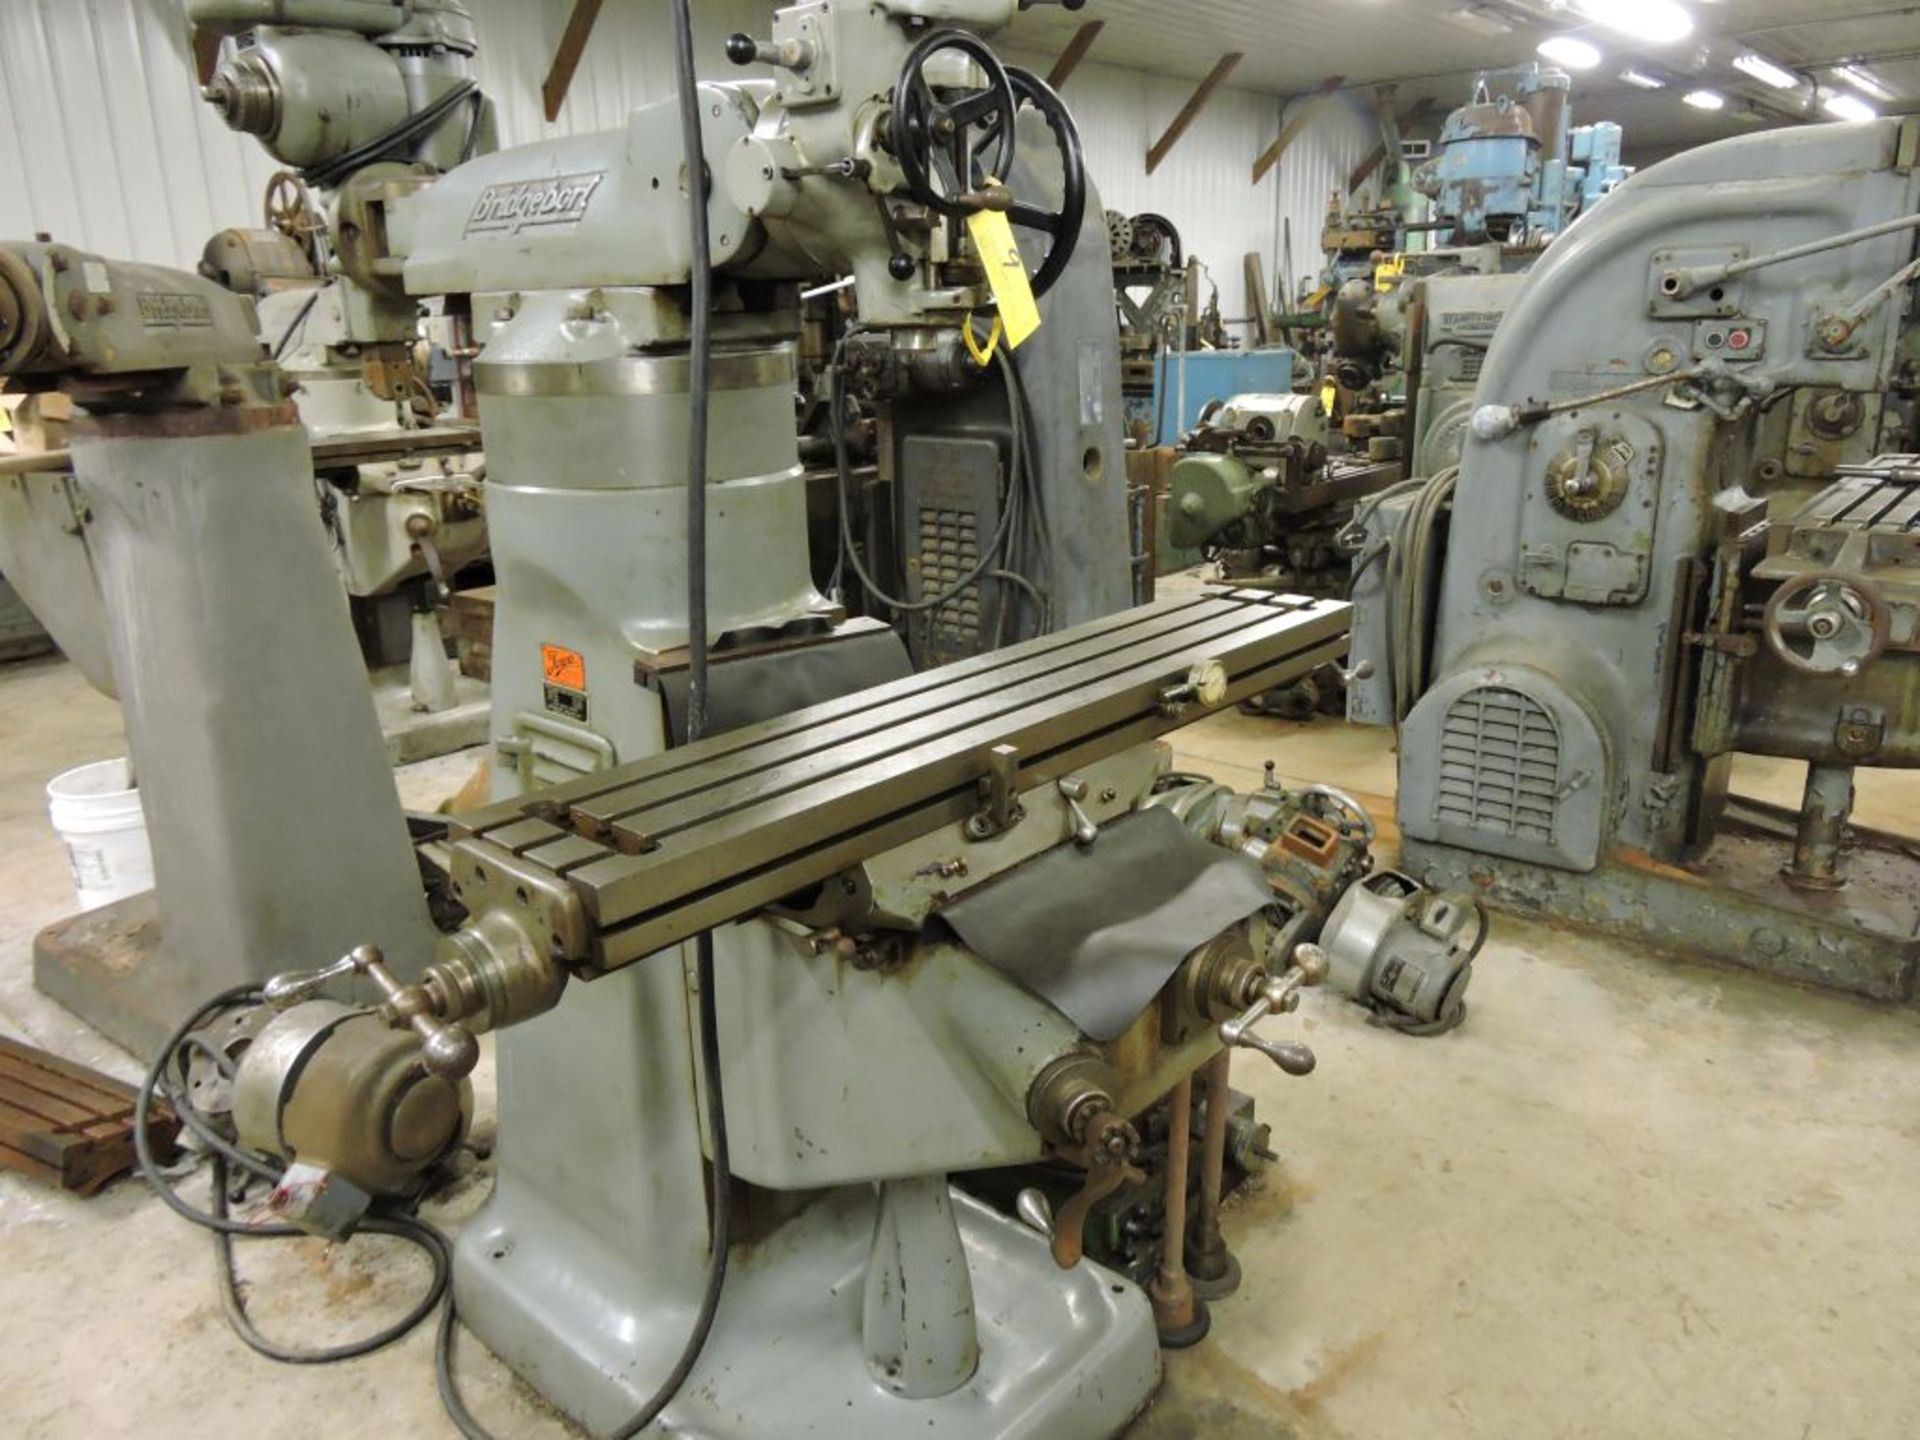 """Bridgeport mill, model 12-BR, sn 83978, 9"""" x 48"""" bed, manual (not down power), shaping attachment. - Image 11 of 15"""